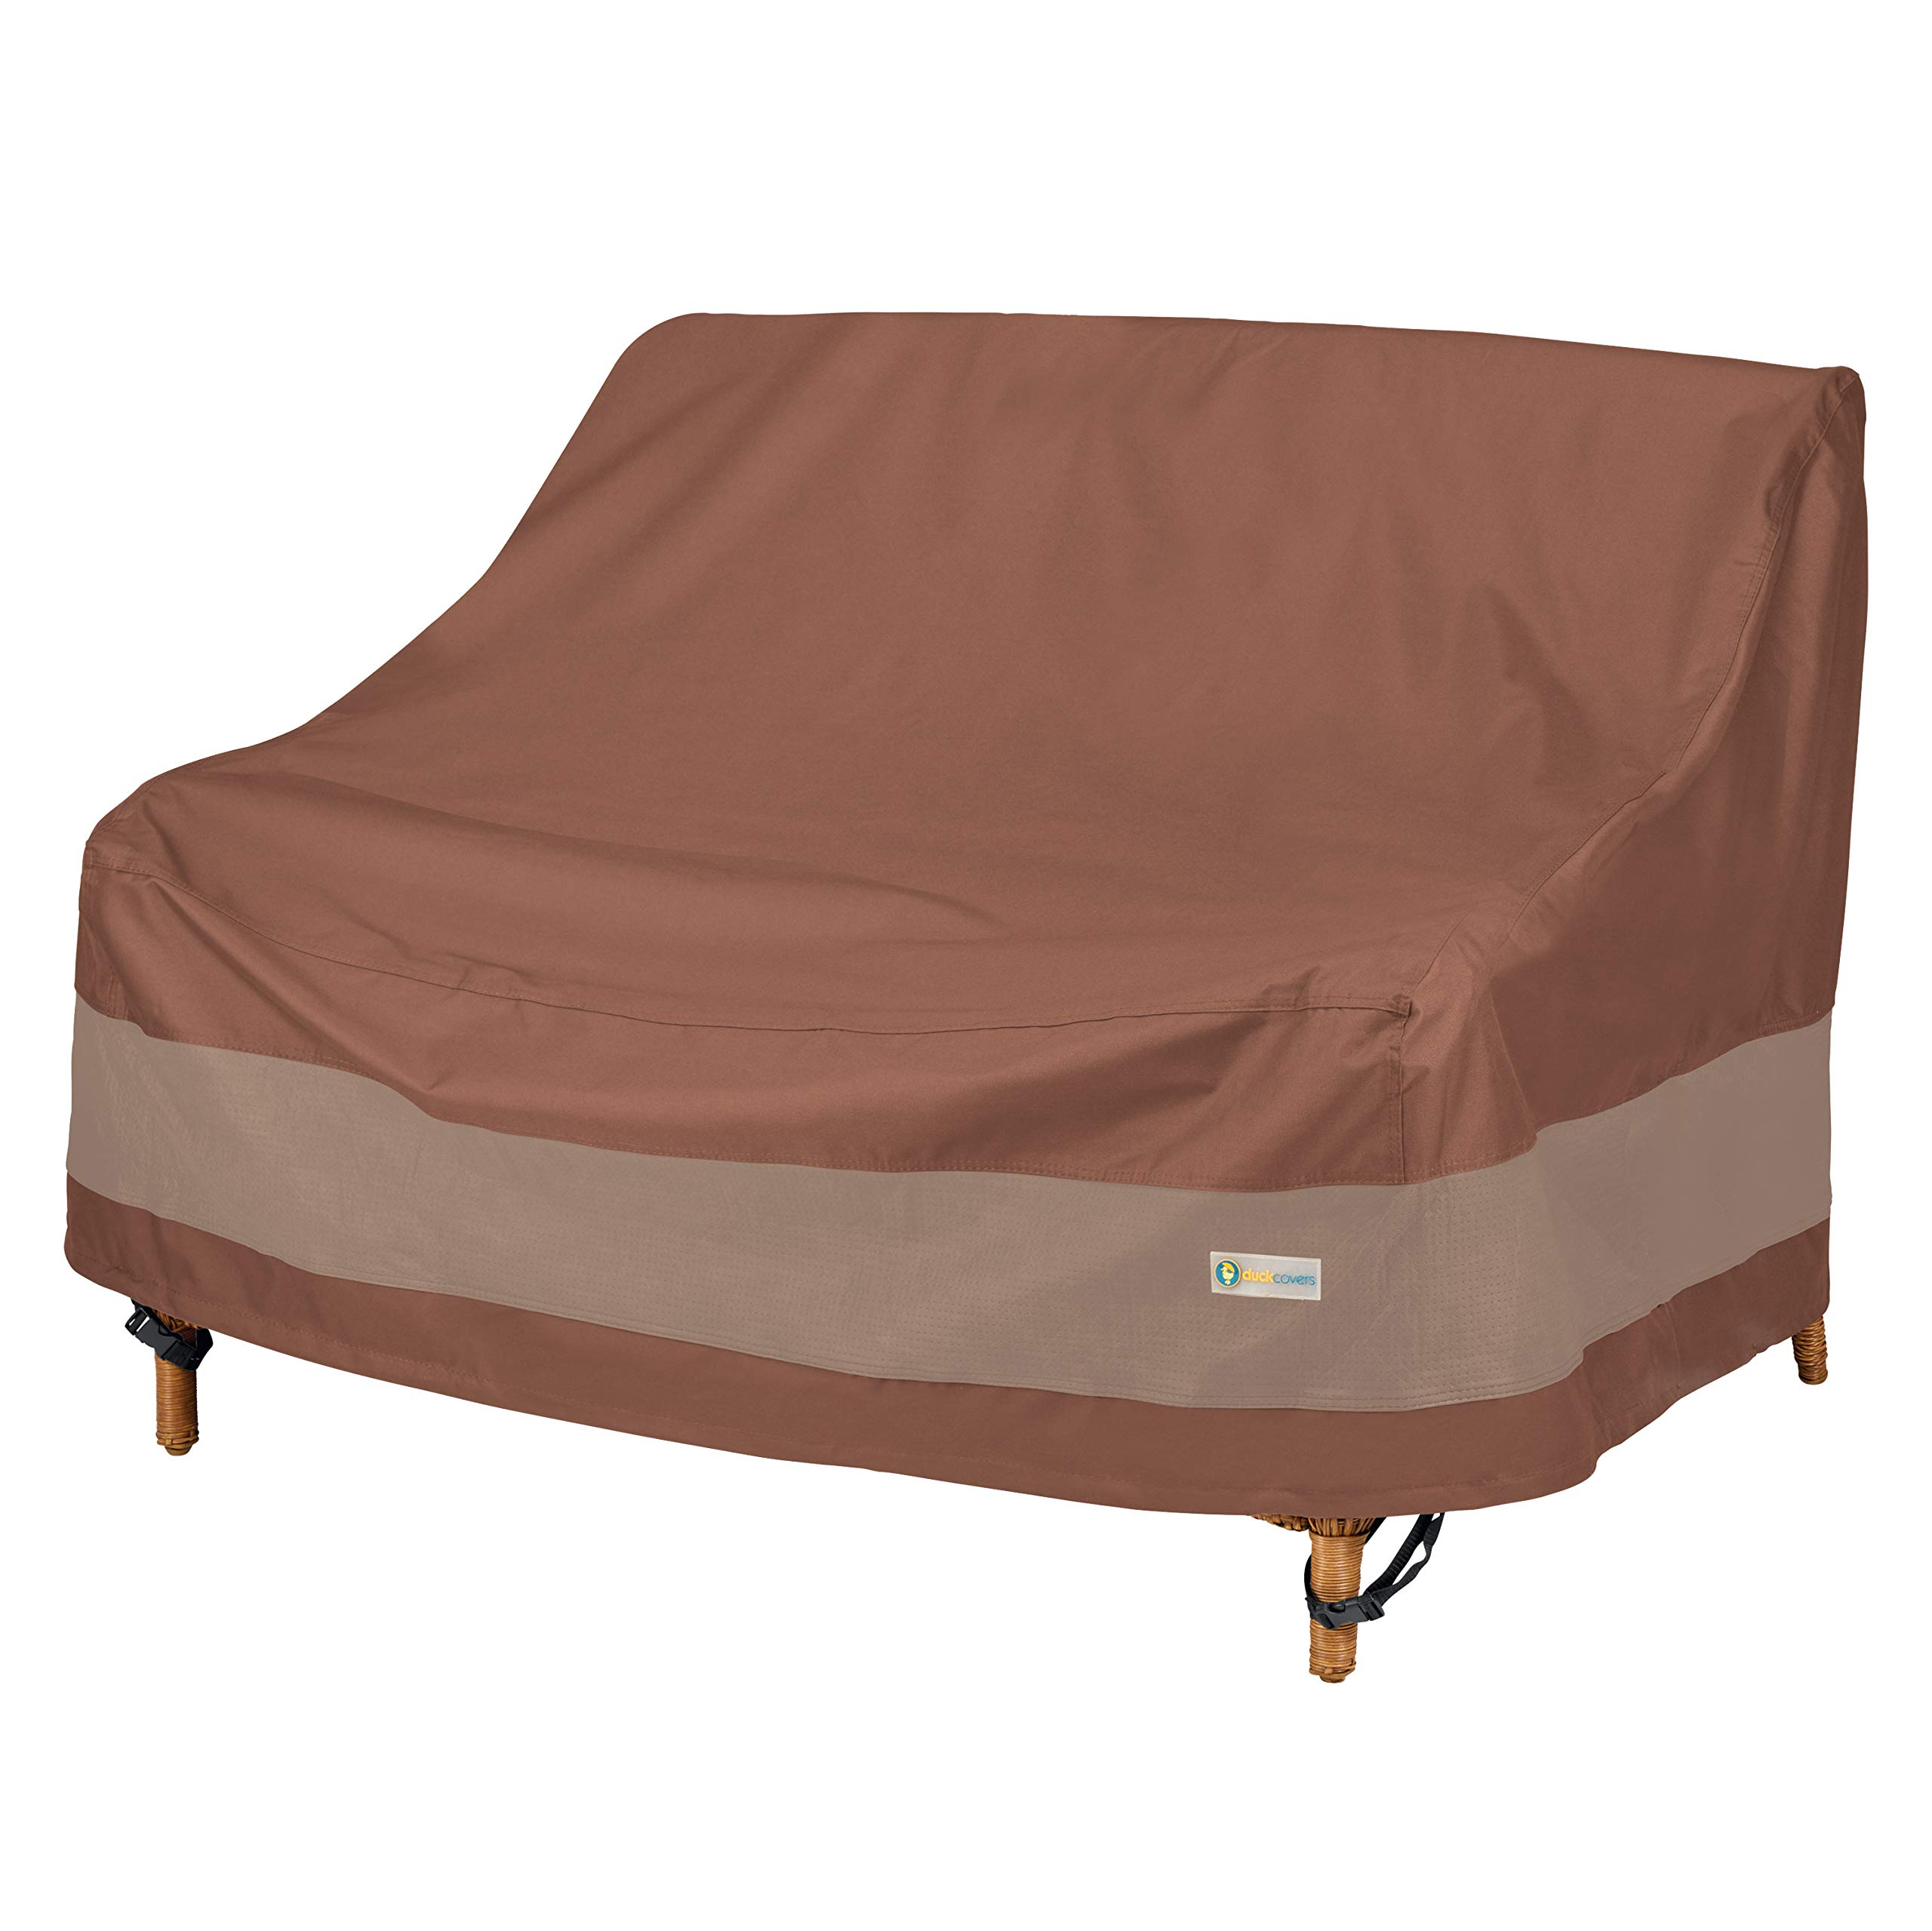 Duck Covers Ultimate Deep Loveseat Cover 58'' Wide